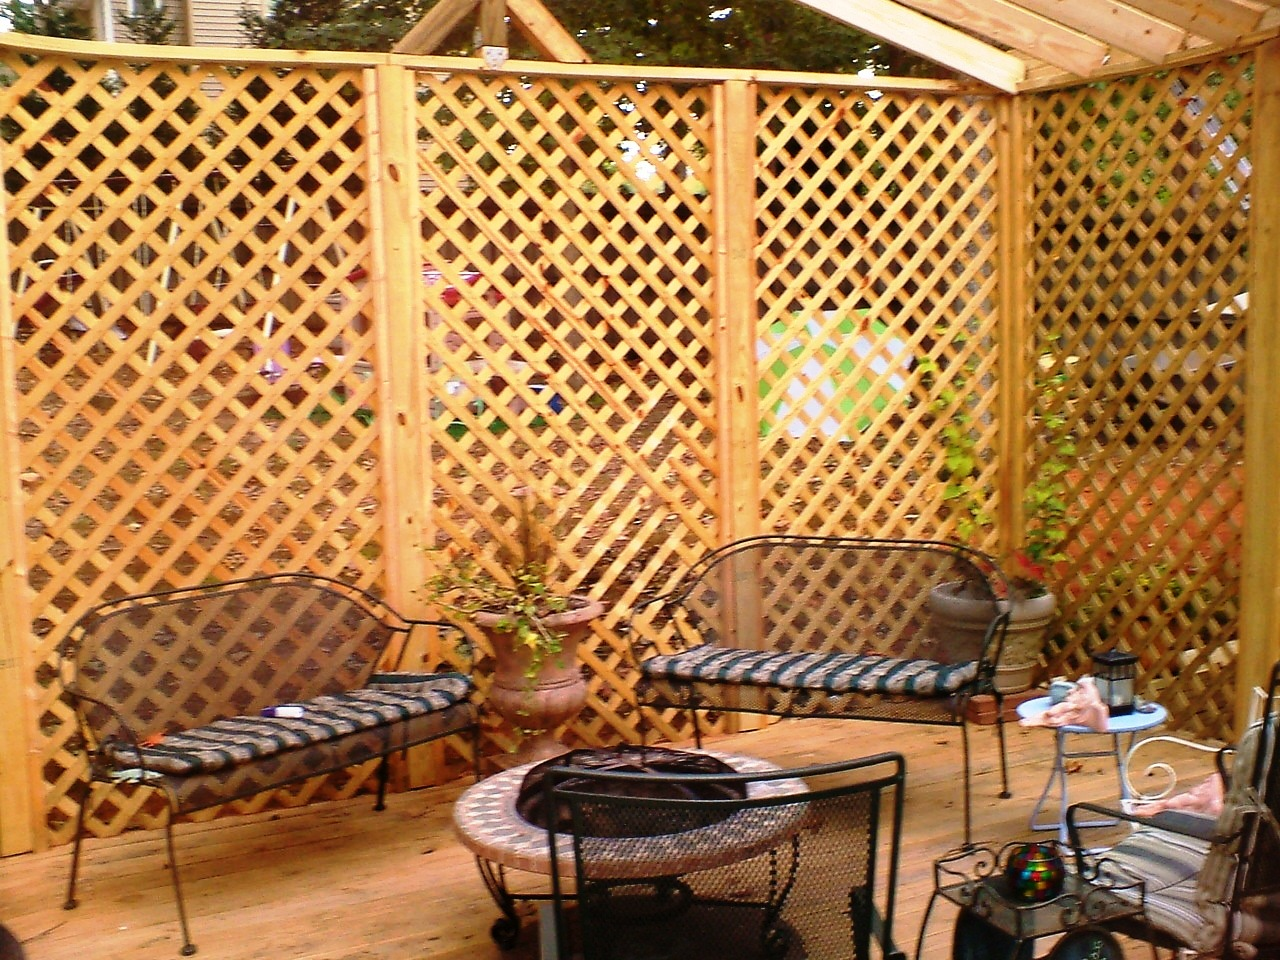 Deck lattice panels